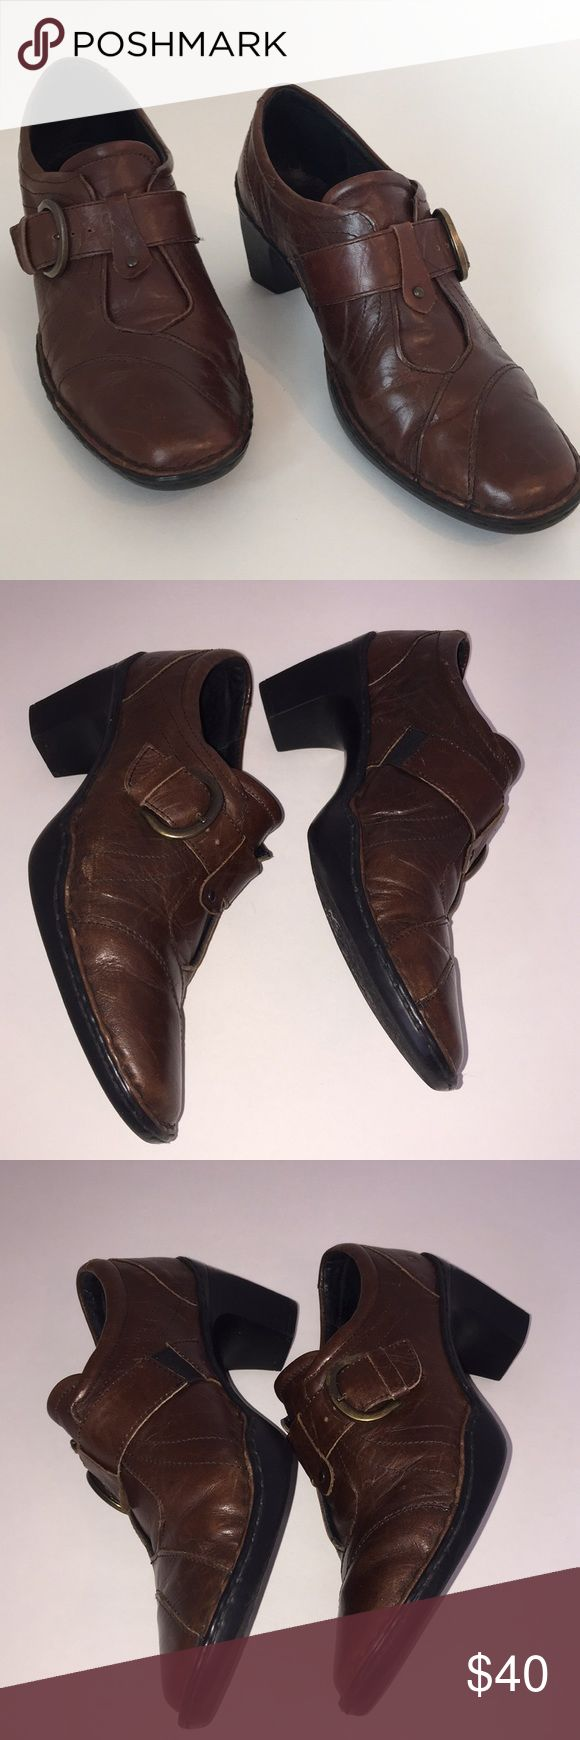 Josef Seibel shoes Adorable distressed leather shoes. Very soft leather. Known for their comfort these shoes have adjustable straps  size eu 39. Gently worn Josef Seibel Shoes